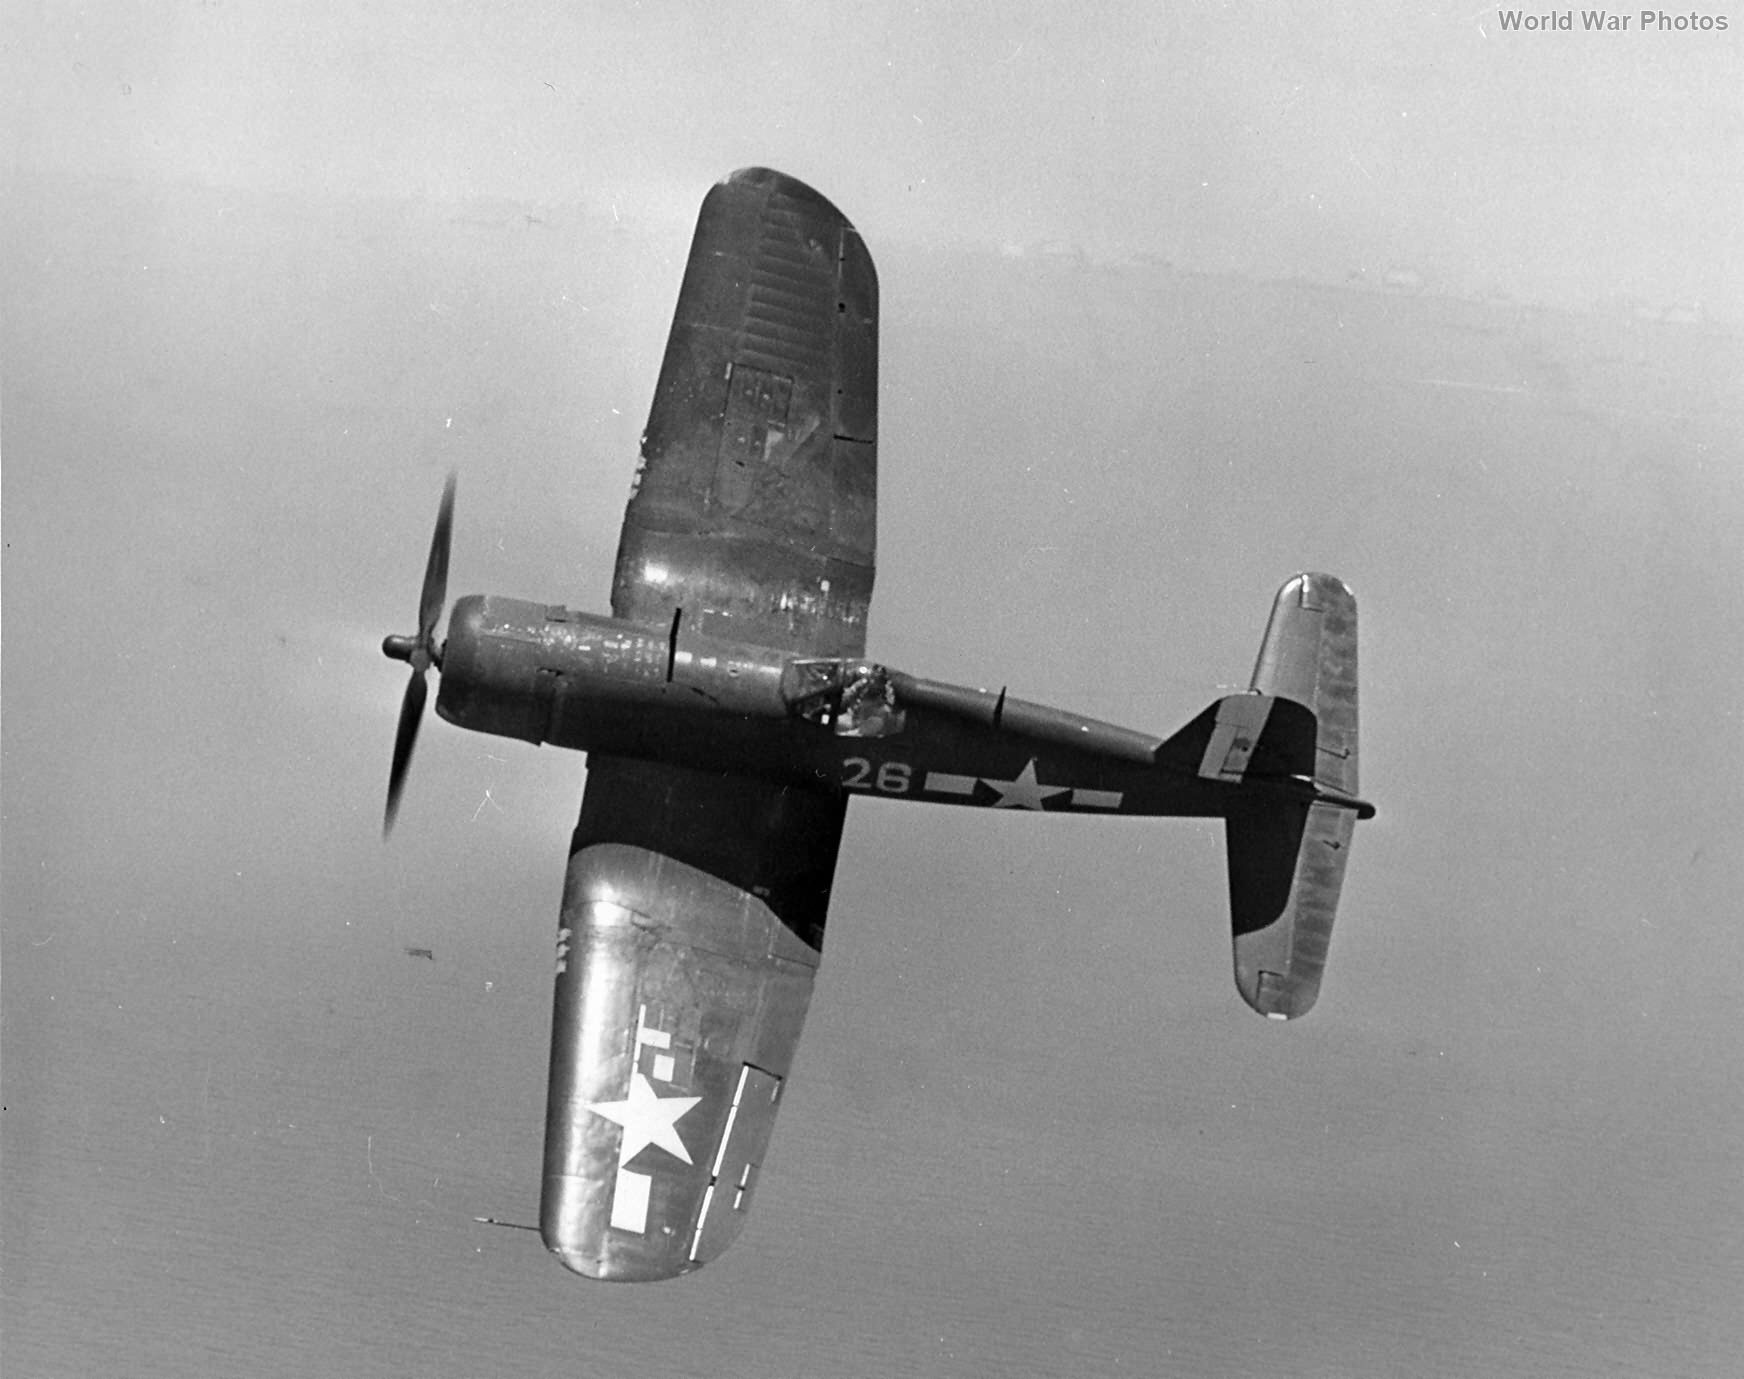 F4U-1D 26 of the VBF-10 from USS Intrepid